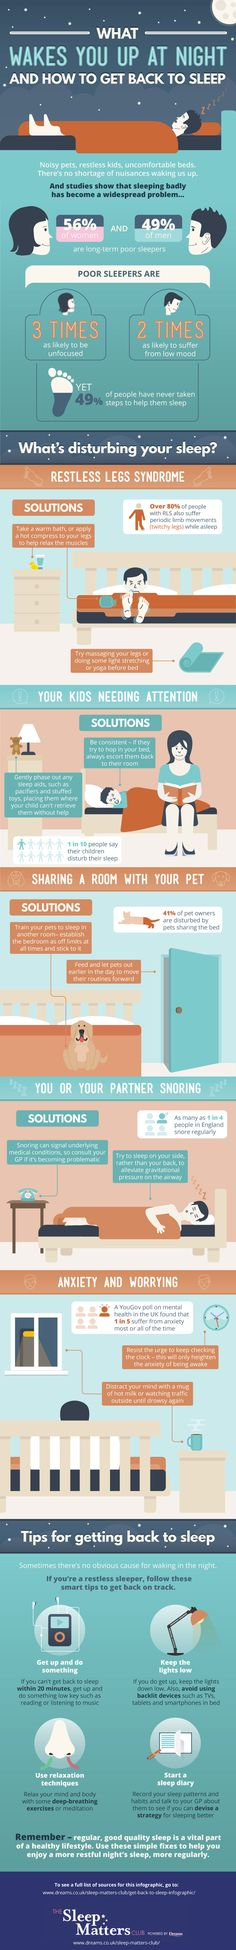 How To Get Back To Sleep In The Middle Of The Night #infographic #Sleep #Health